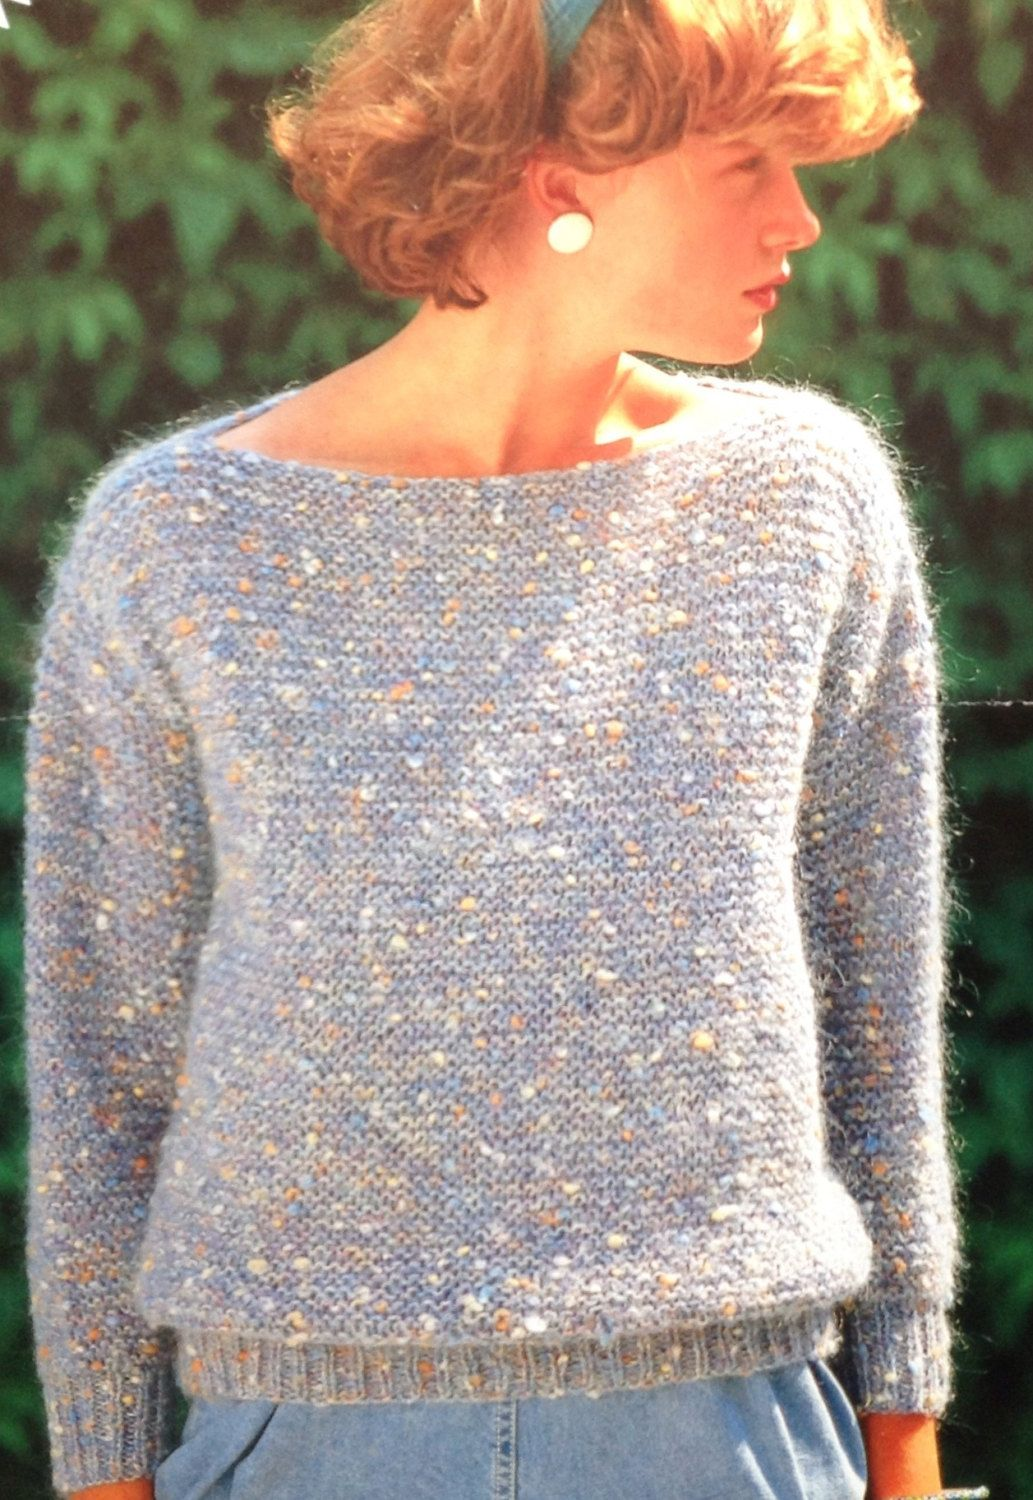 d0646f5d4ebee This is a copy of the Original Pattern for Instant Download Easy Garter  Stitch Knitting Pattern Girls Ladies Womens Sweater Jumper Boat Neck size  30-40in ...